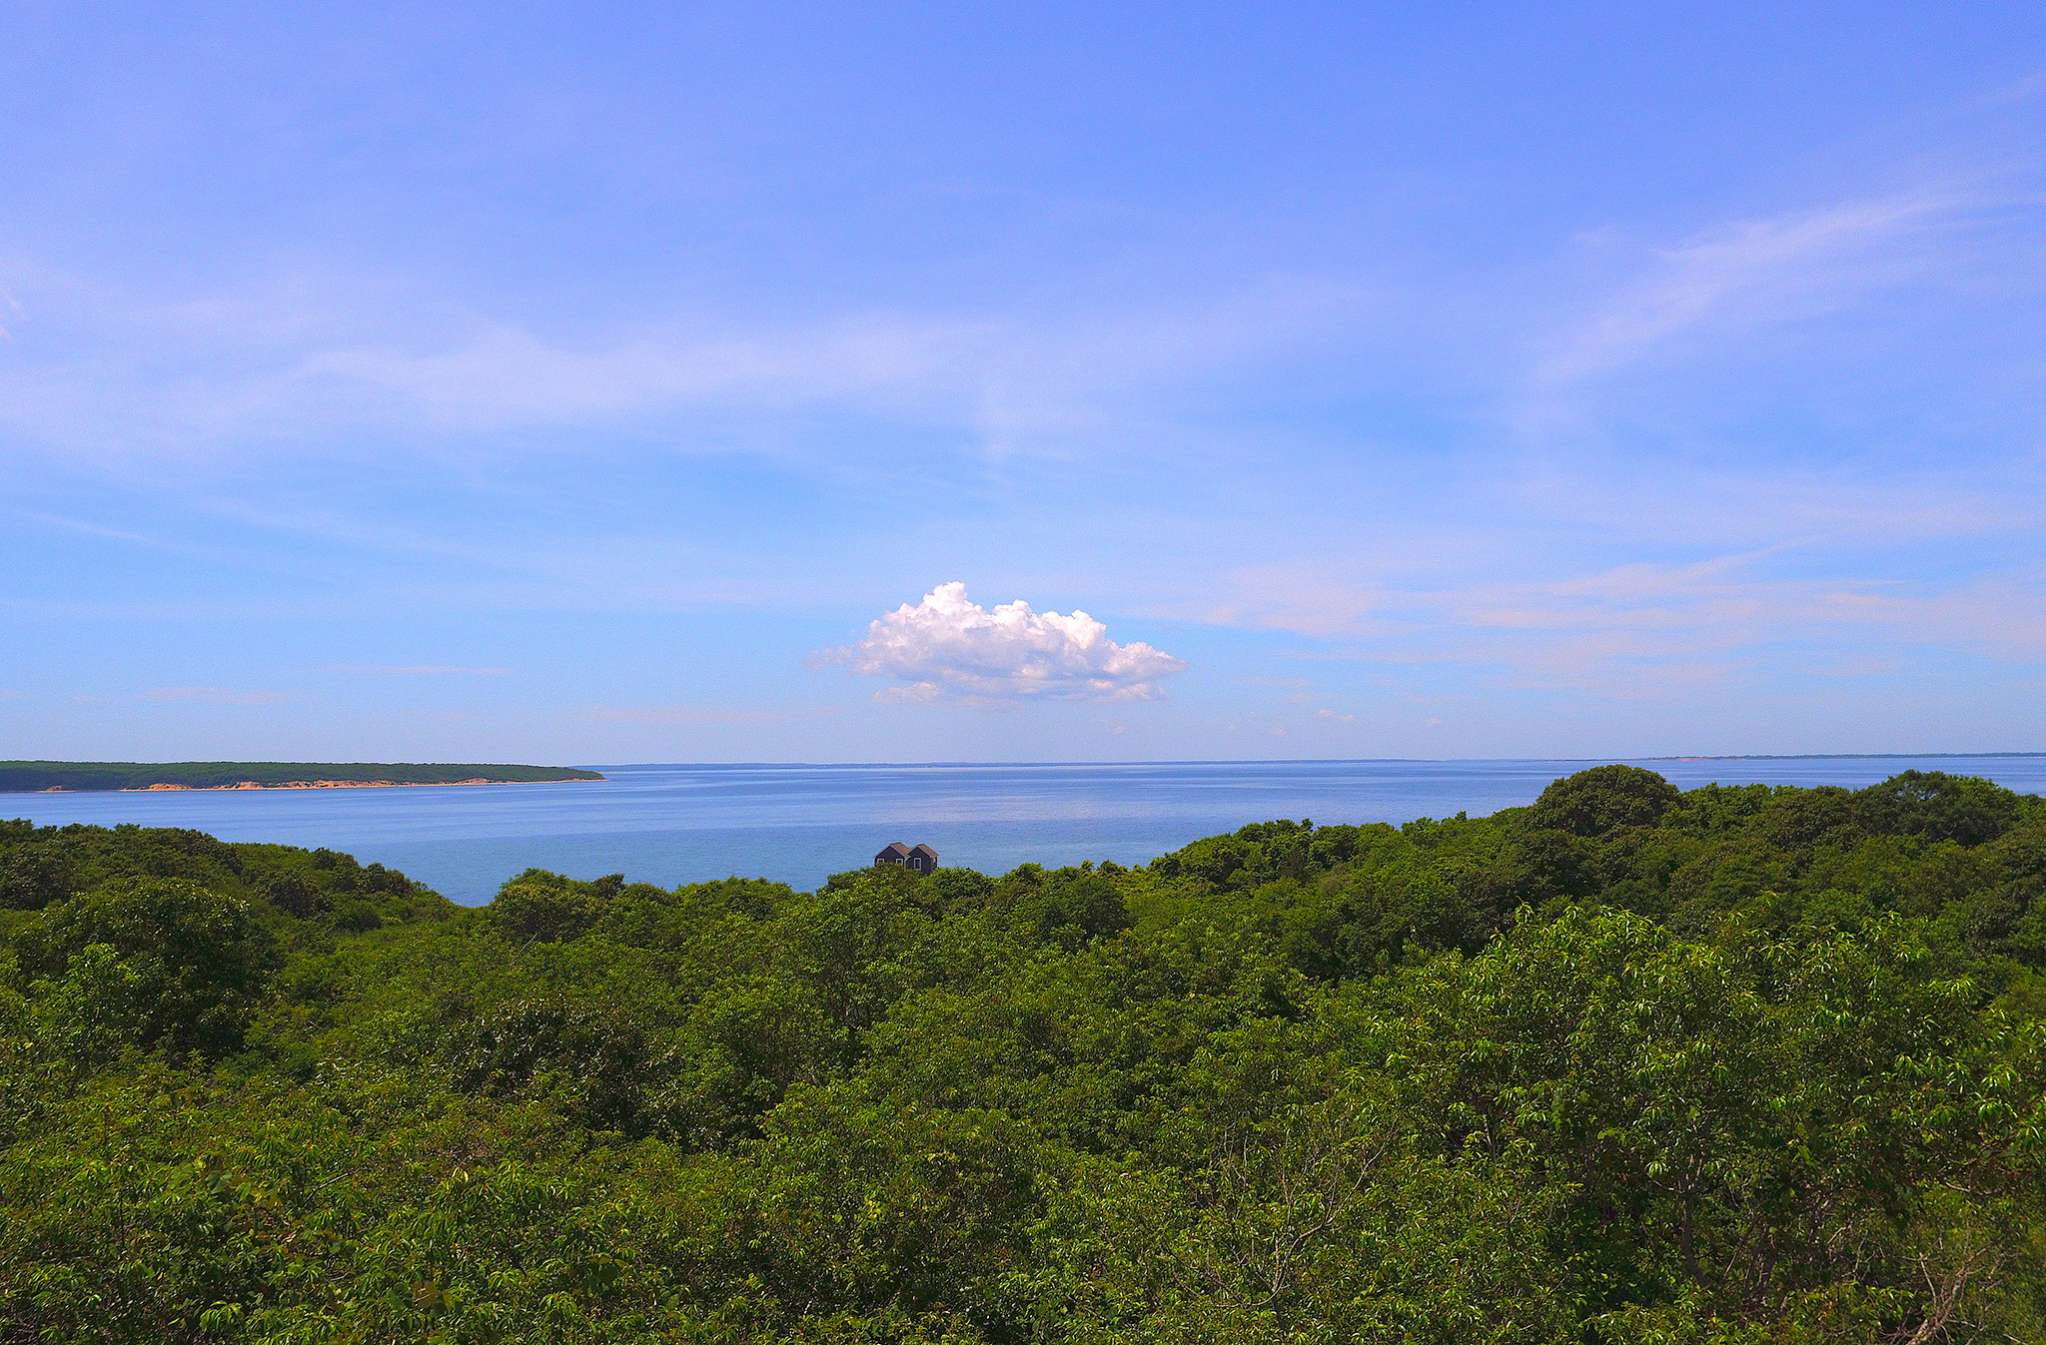 Land for Sale at Rare Land Opportunity With Water Views 1 Captain Balfour Way, Montauk, New York